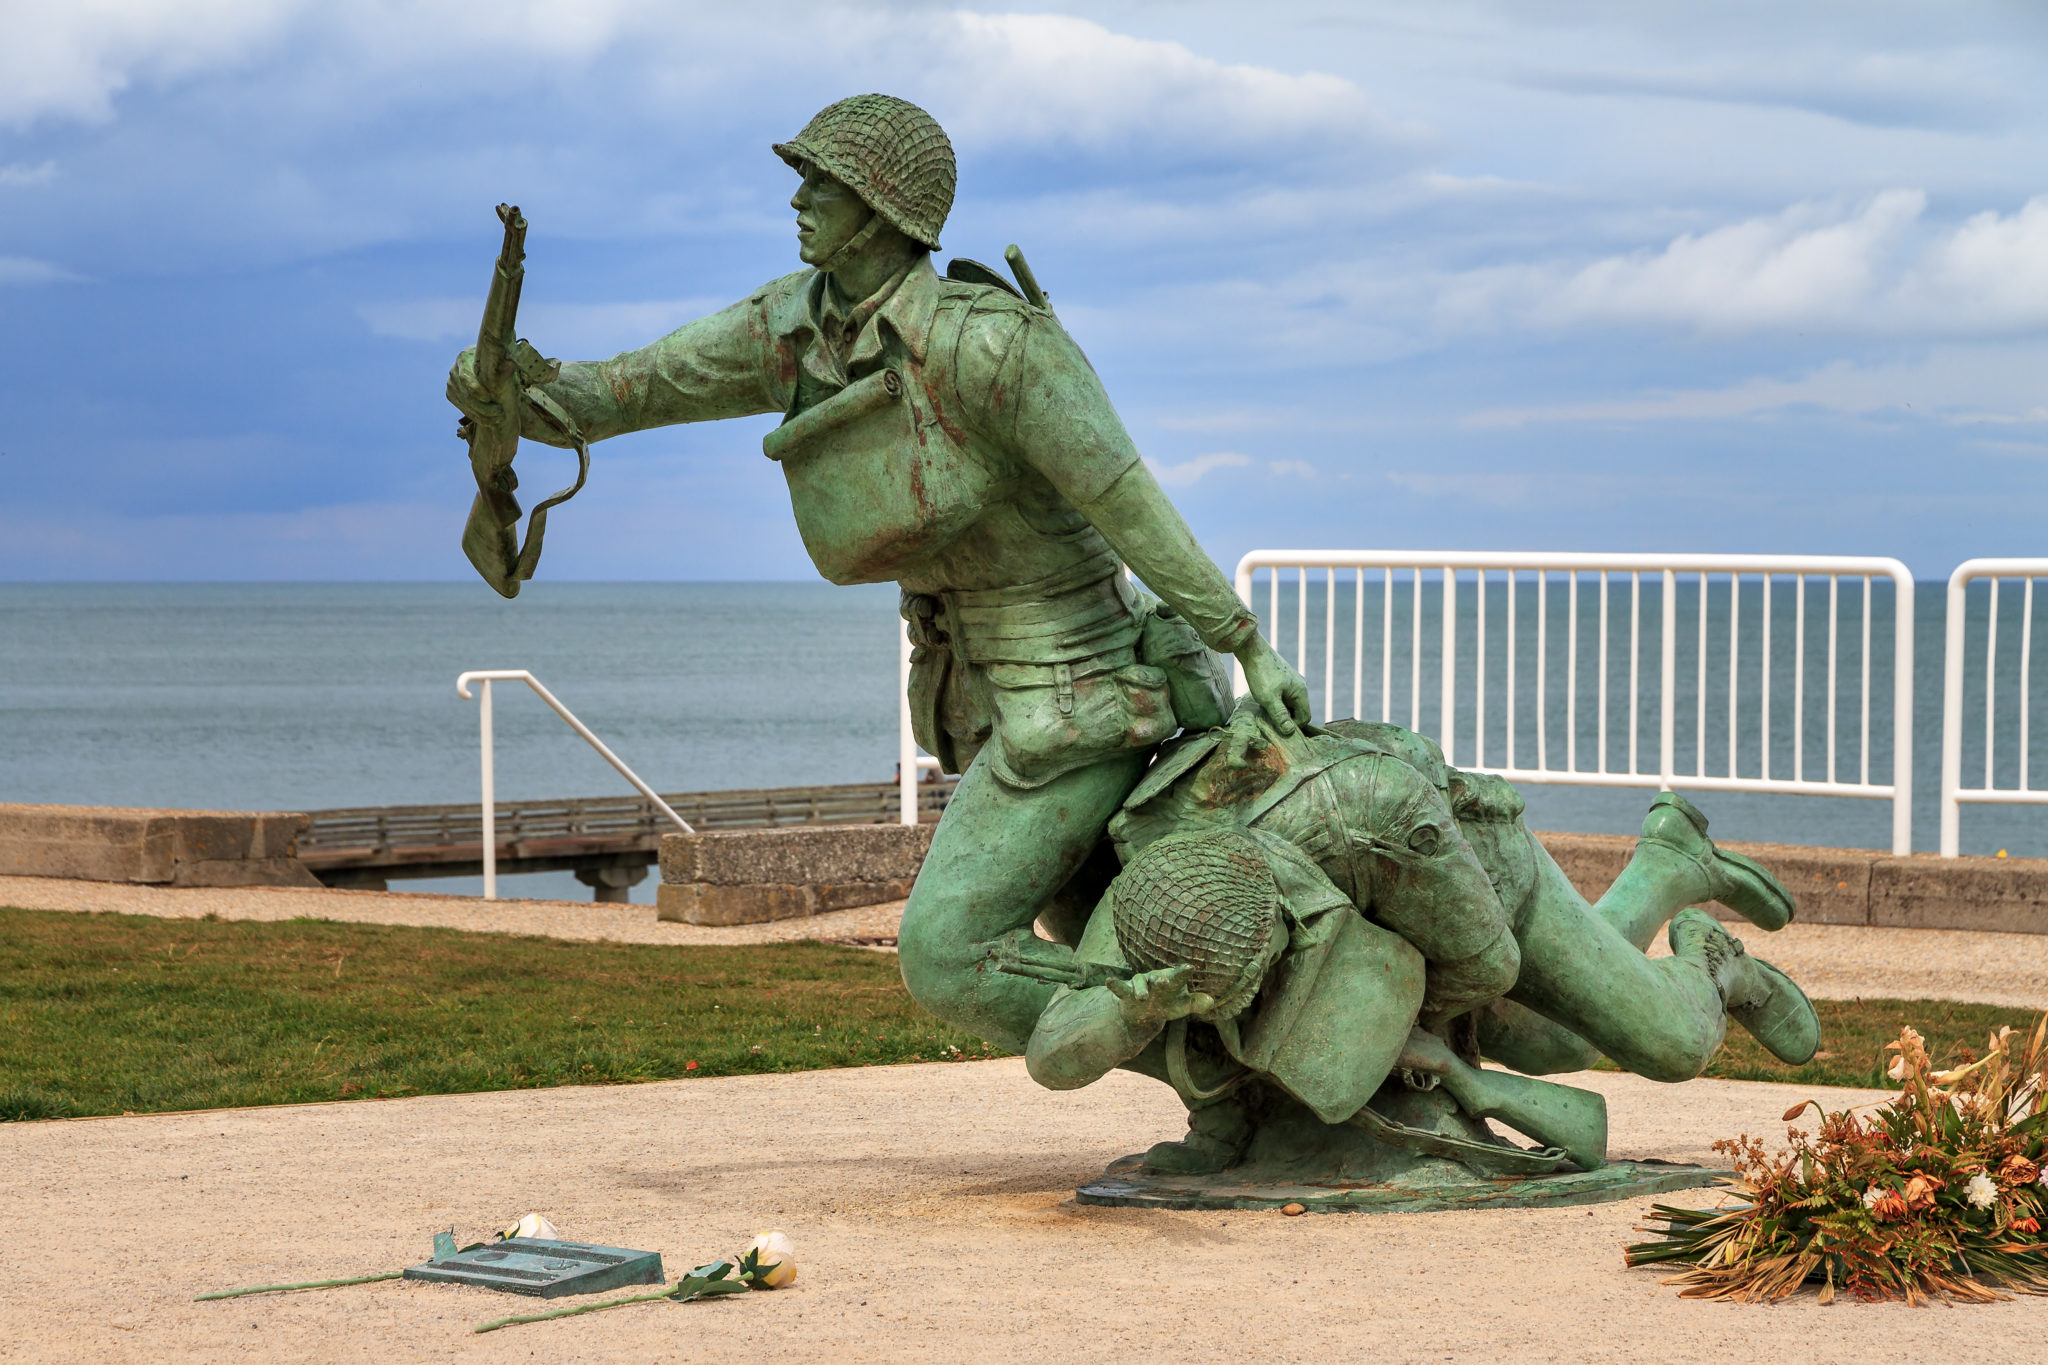 The National WWII Museum to Honor the 75th Anniversary of D-Day